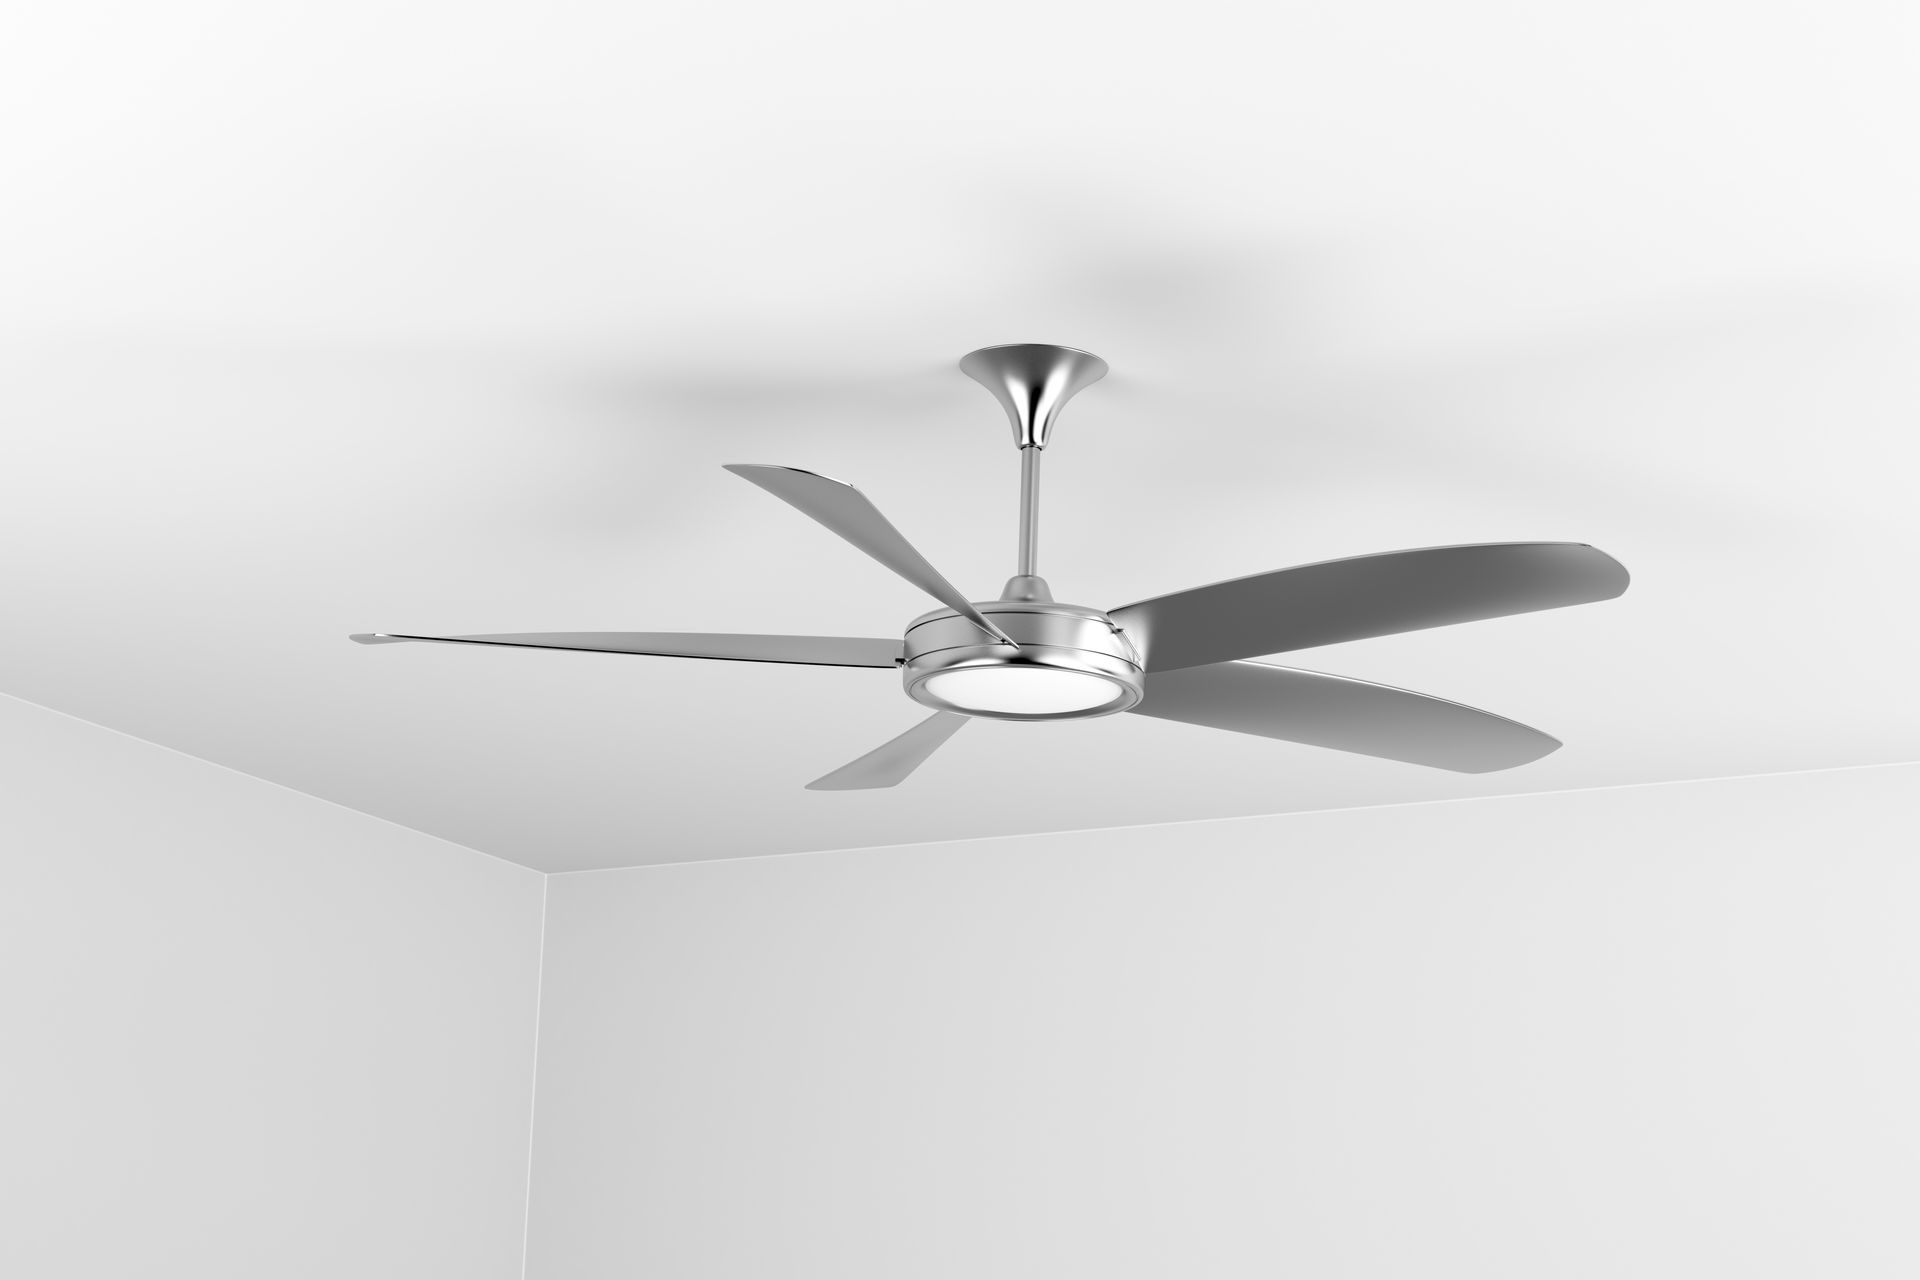 Best Ceiling Fans Under 2000 INR in India